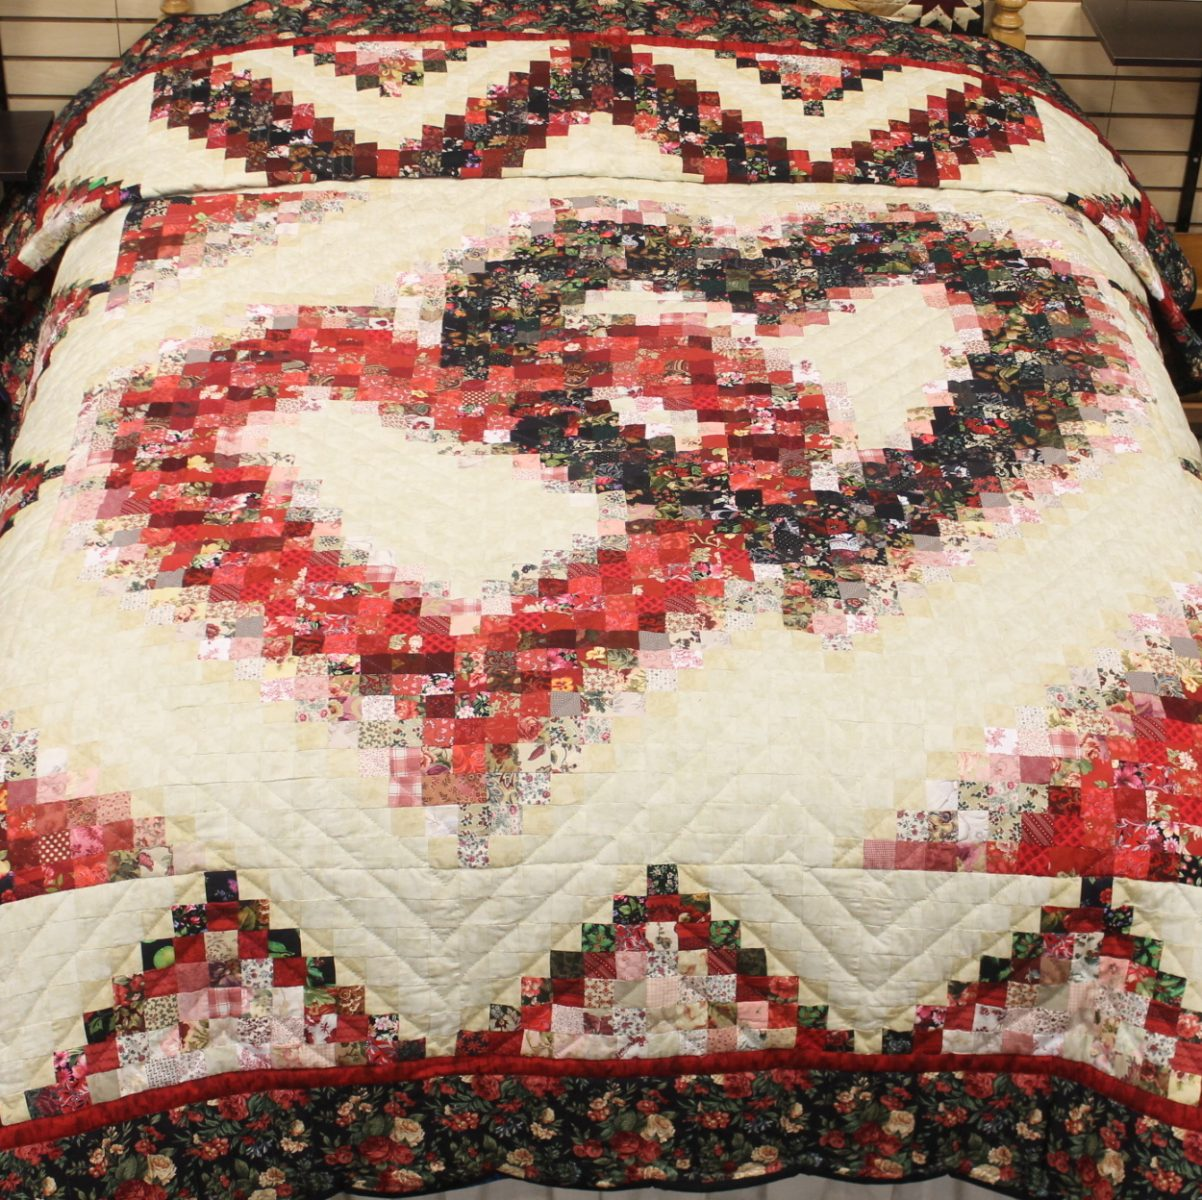 Linking Hearts Quilts Queen Linking Hearts Quilt Family Farm Quilts